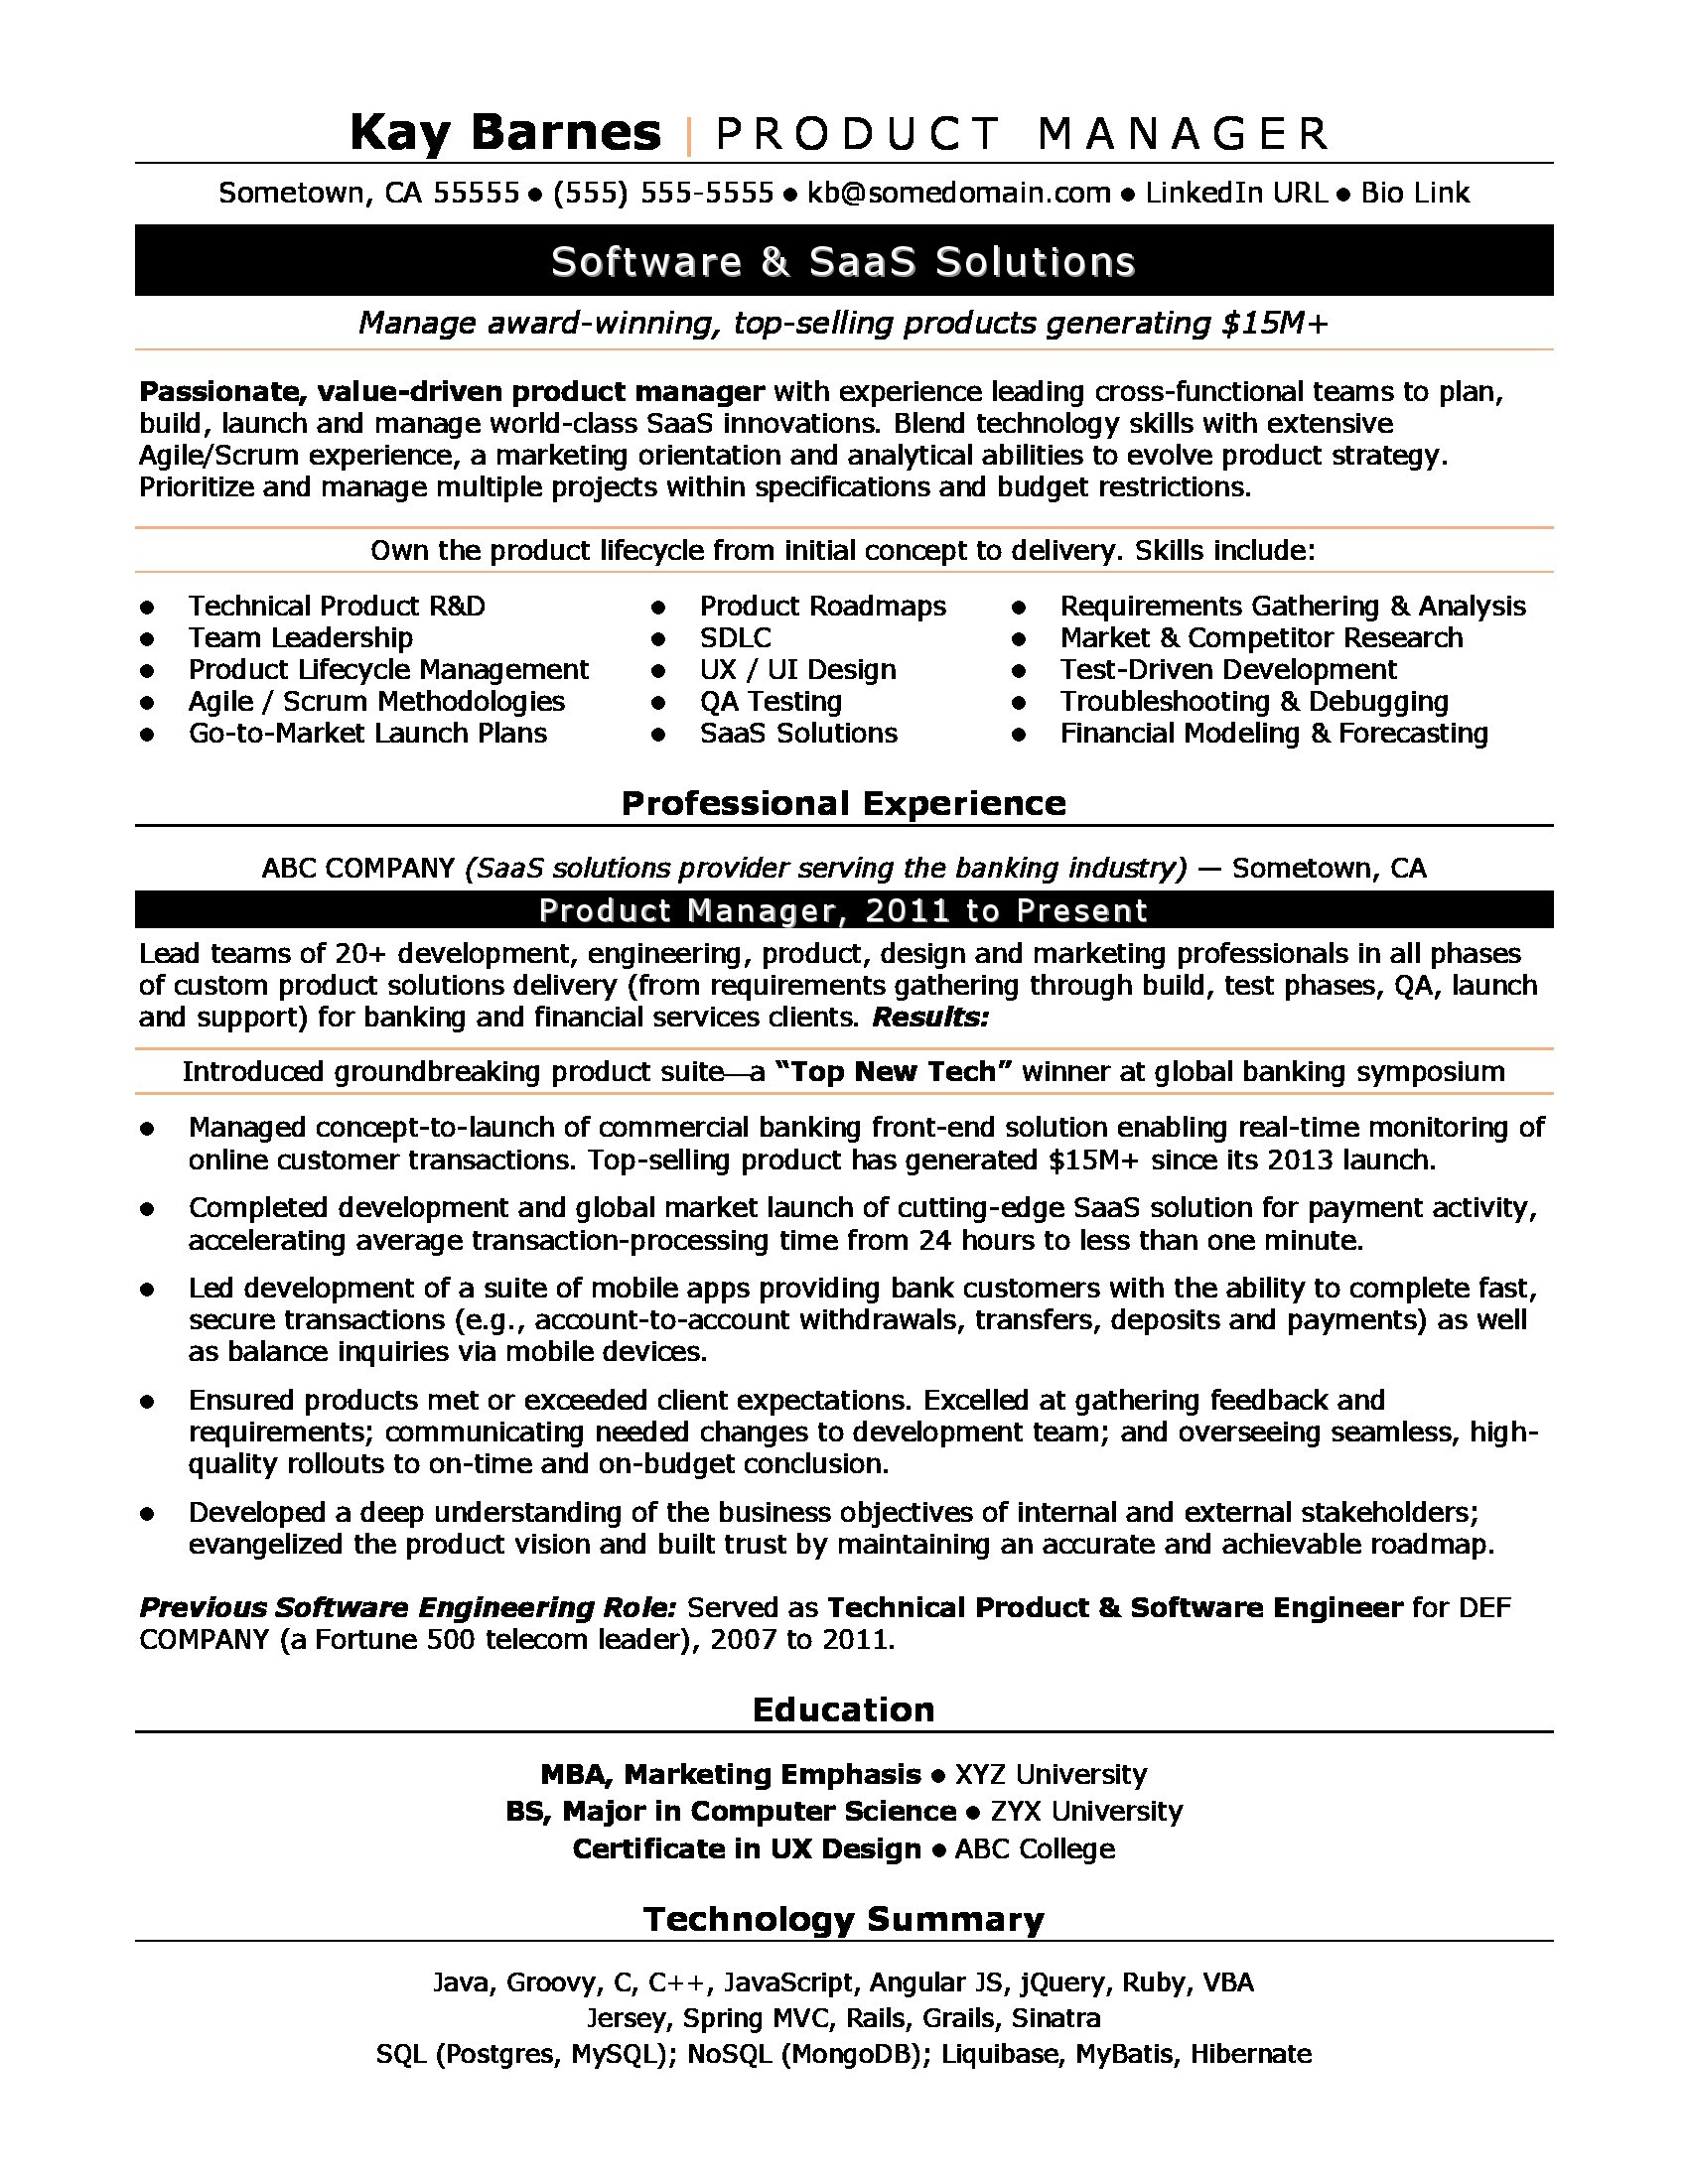 product manager resume sample - Product Manager Resume Sample